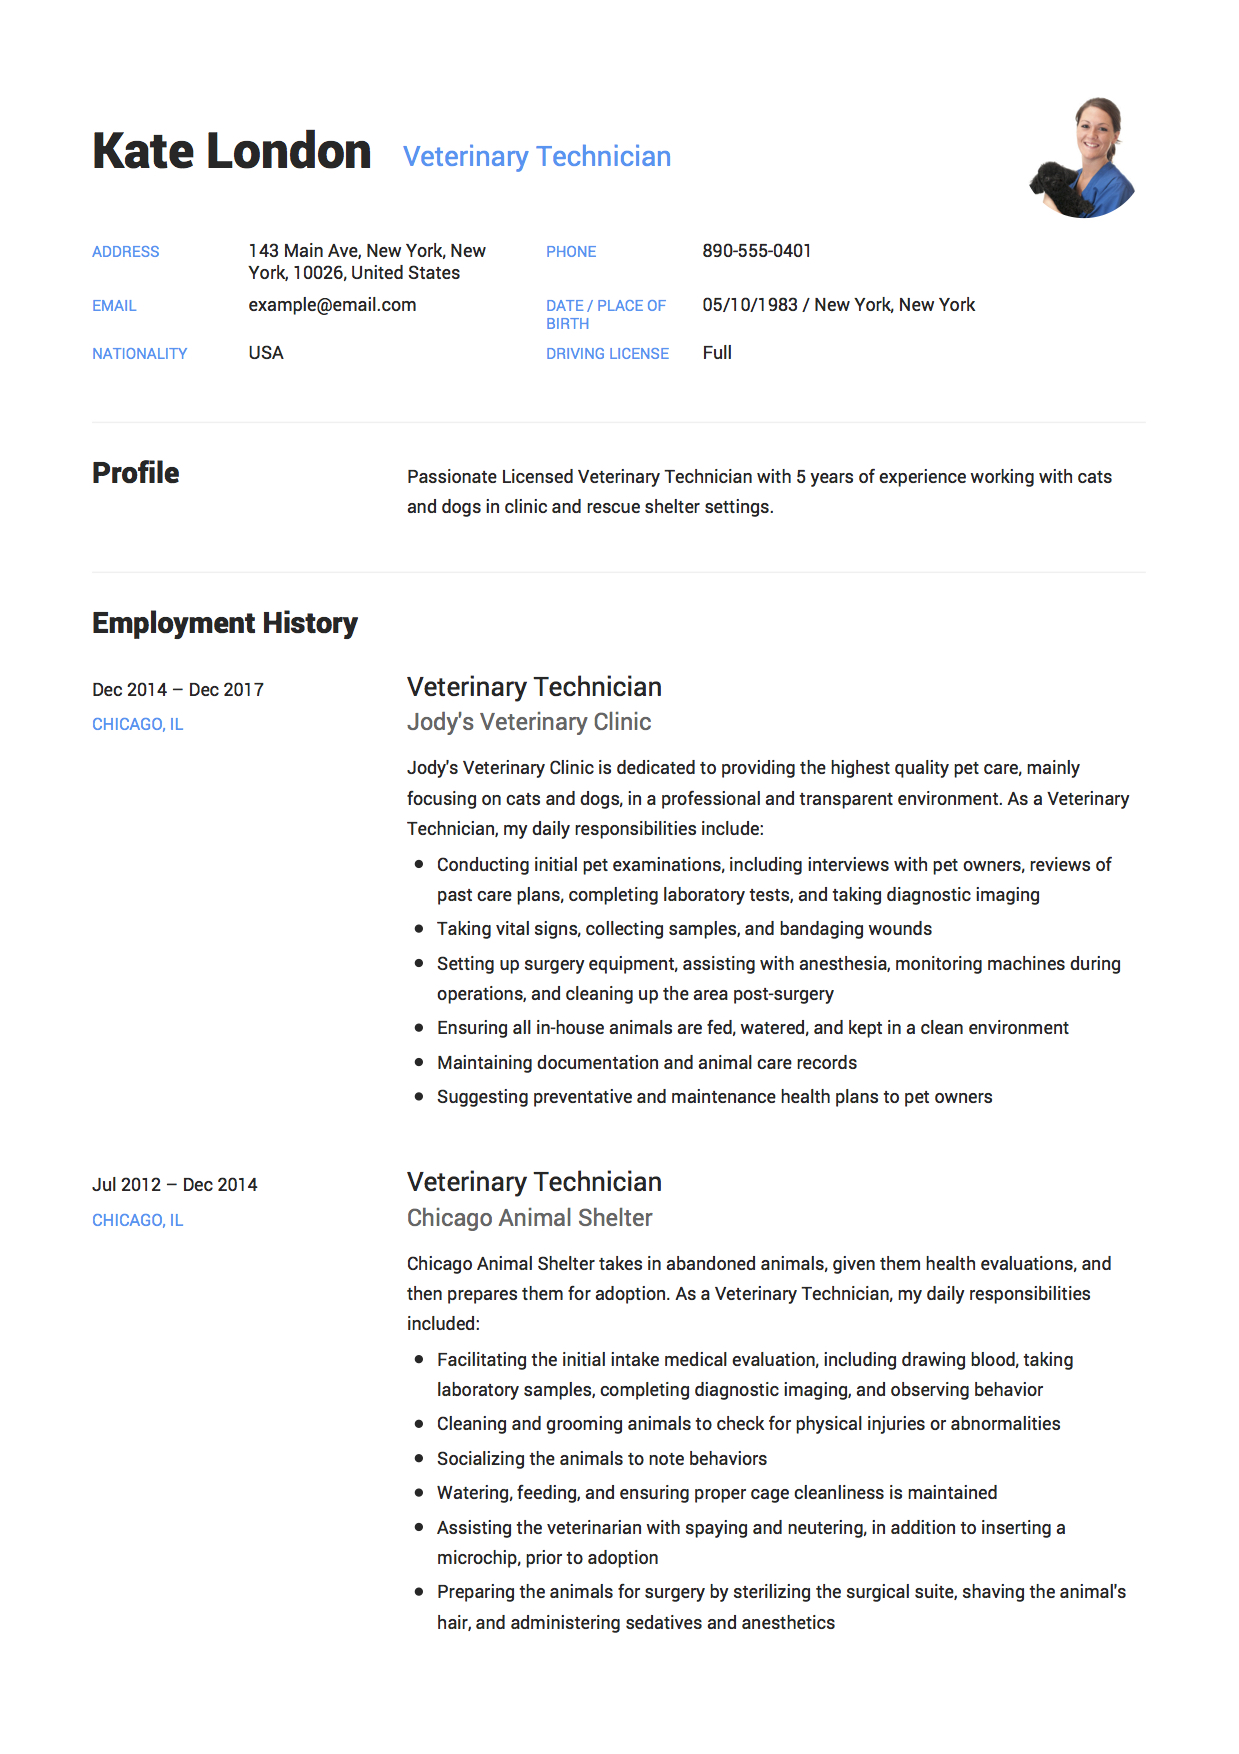 guide veterinary technician resume samples pdf sample chuck college sophomore tips for Resume Veterinary Technician Resume Sample